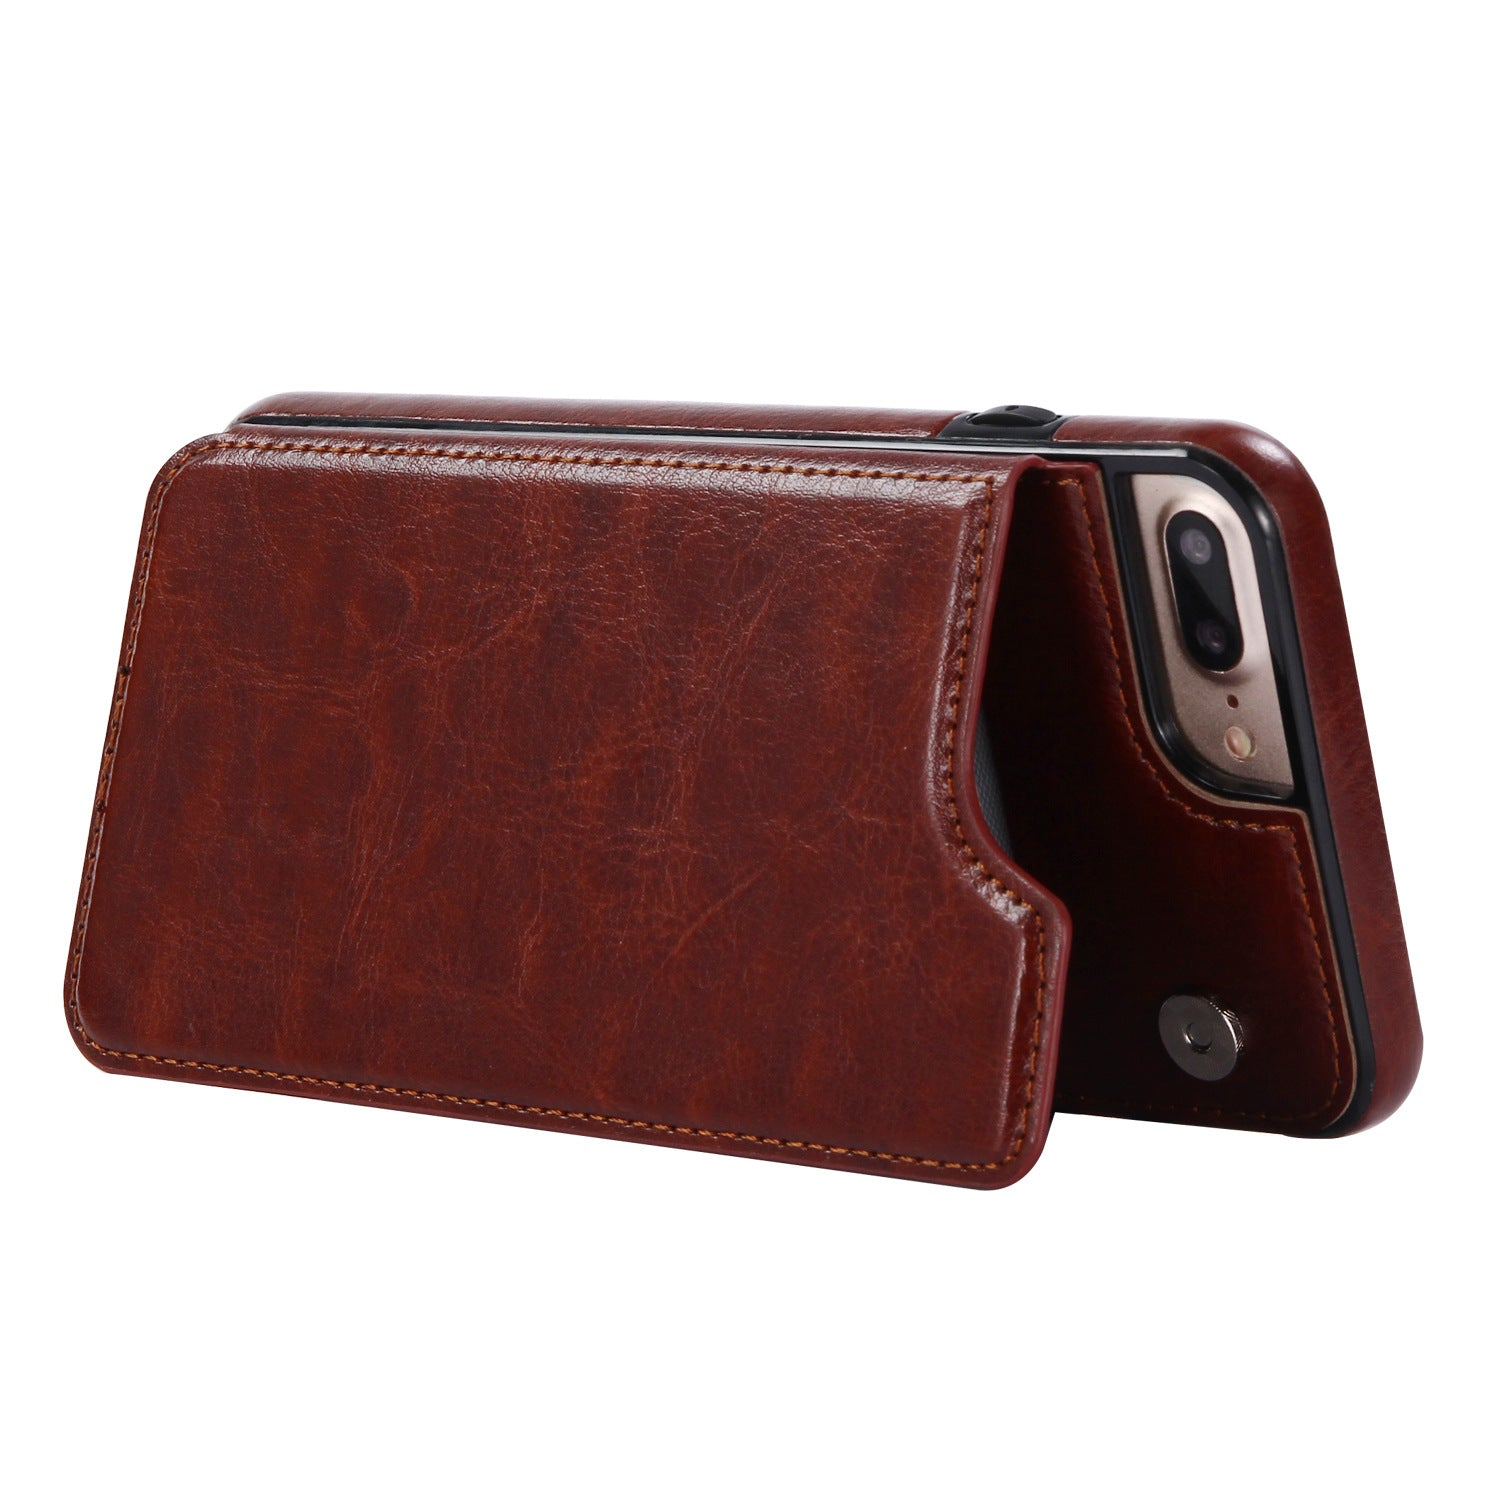 3 In 1 Luxury Leather Wallet Case For Iphone